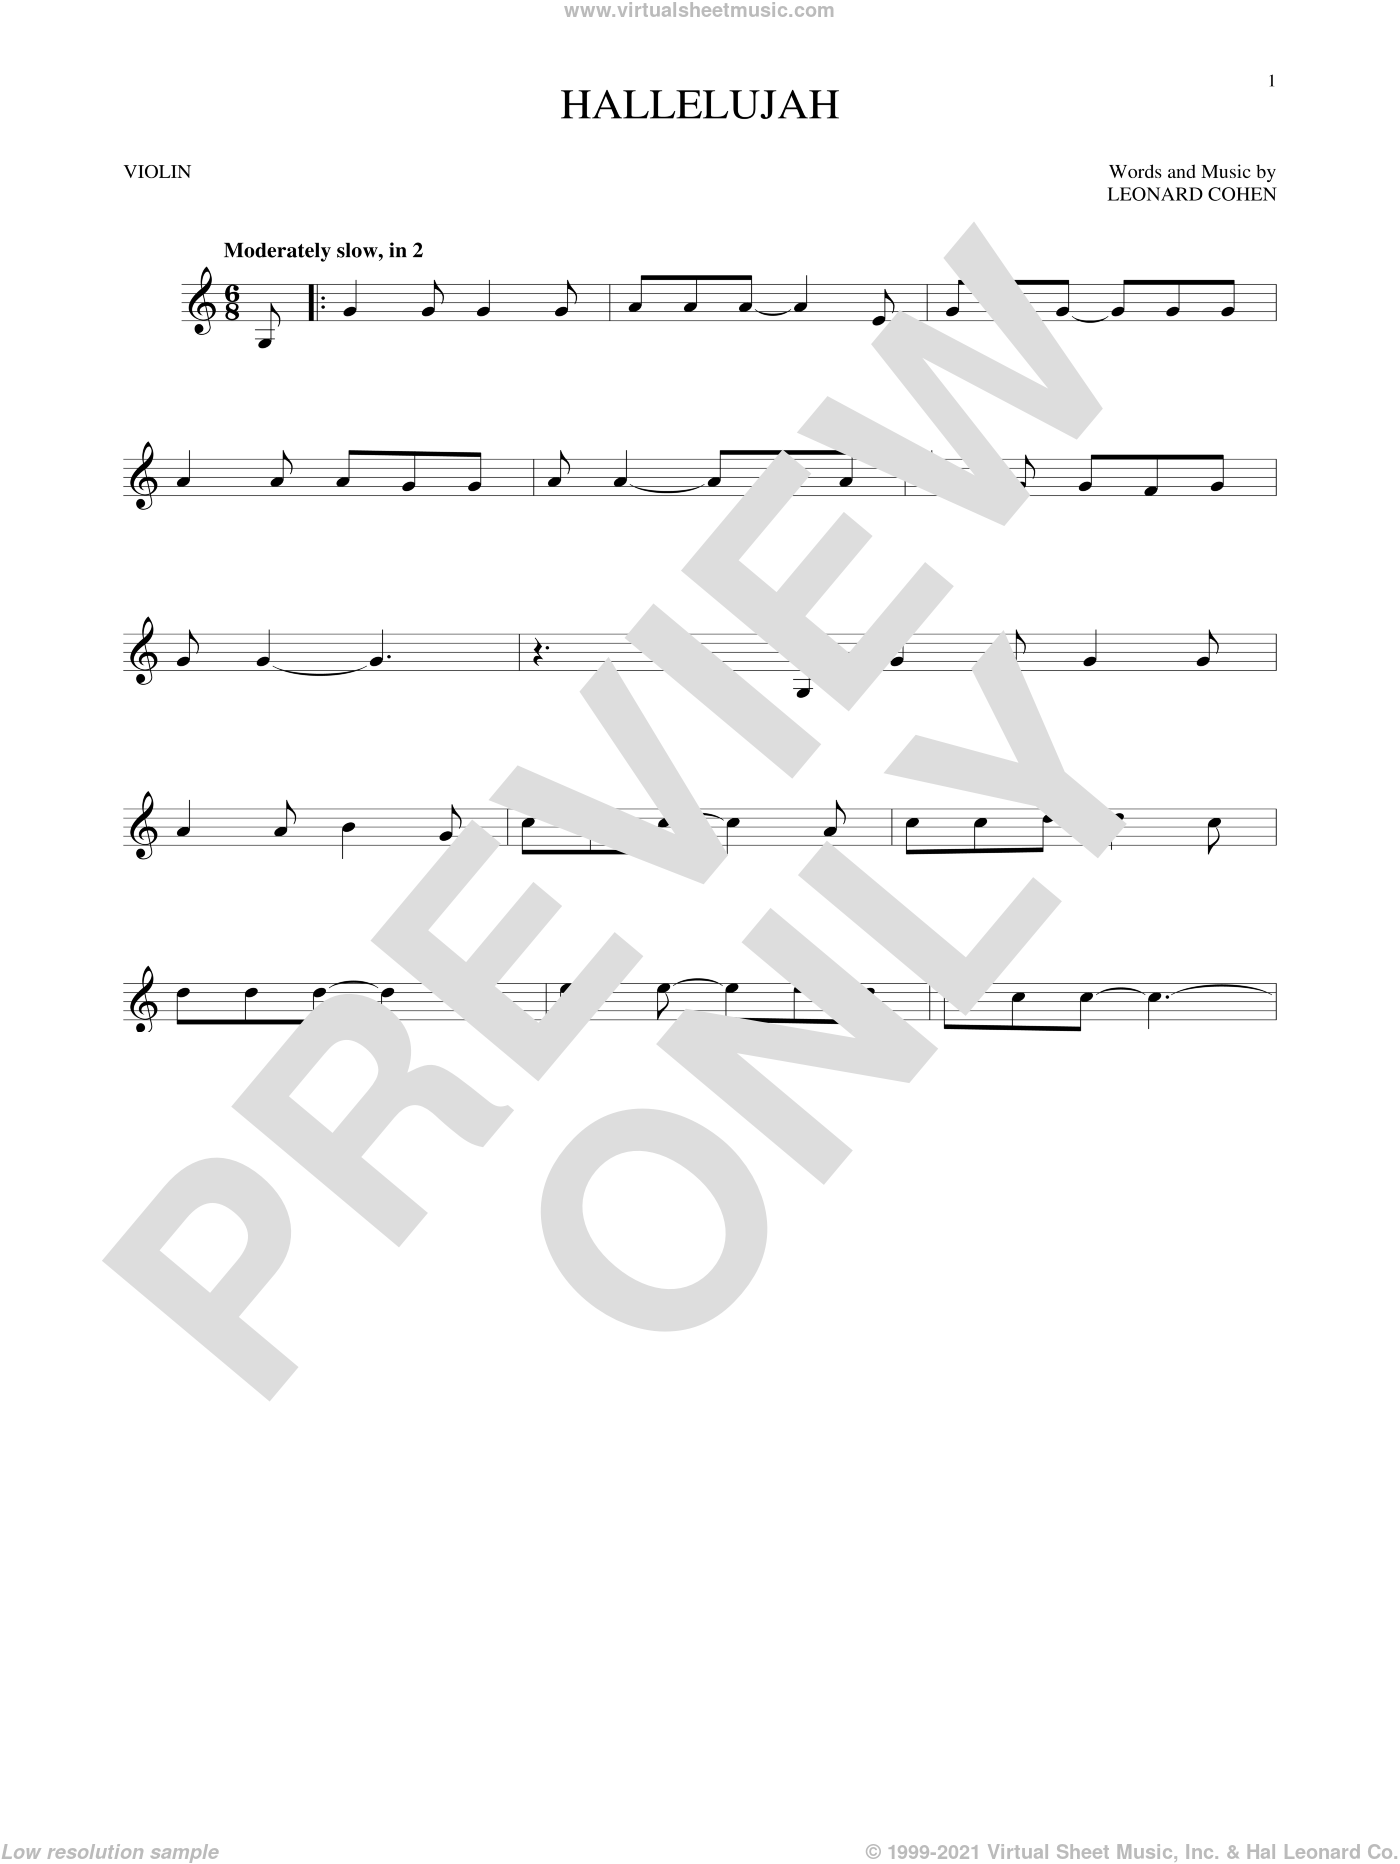 Hallelujah sheet music for violin solo by Leonard Cohen, Justin Timberlake & Matt Morris featuring Charlie Sexton and Lee DeWyze, intermediate skill level